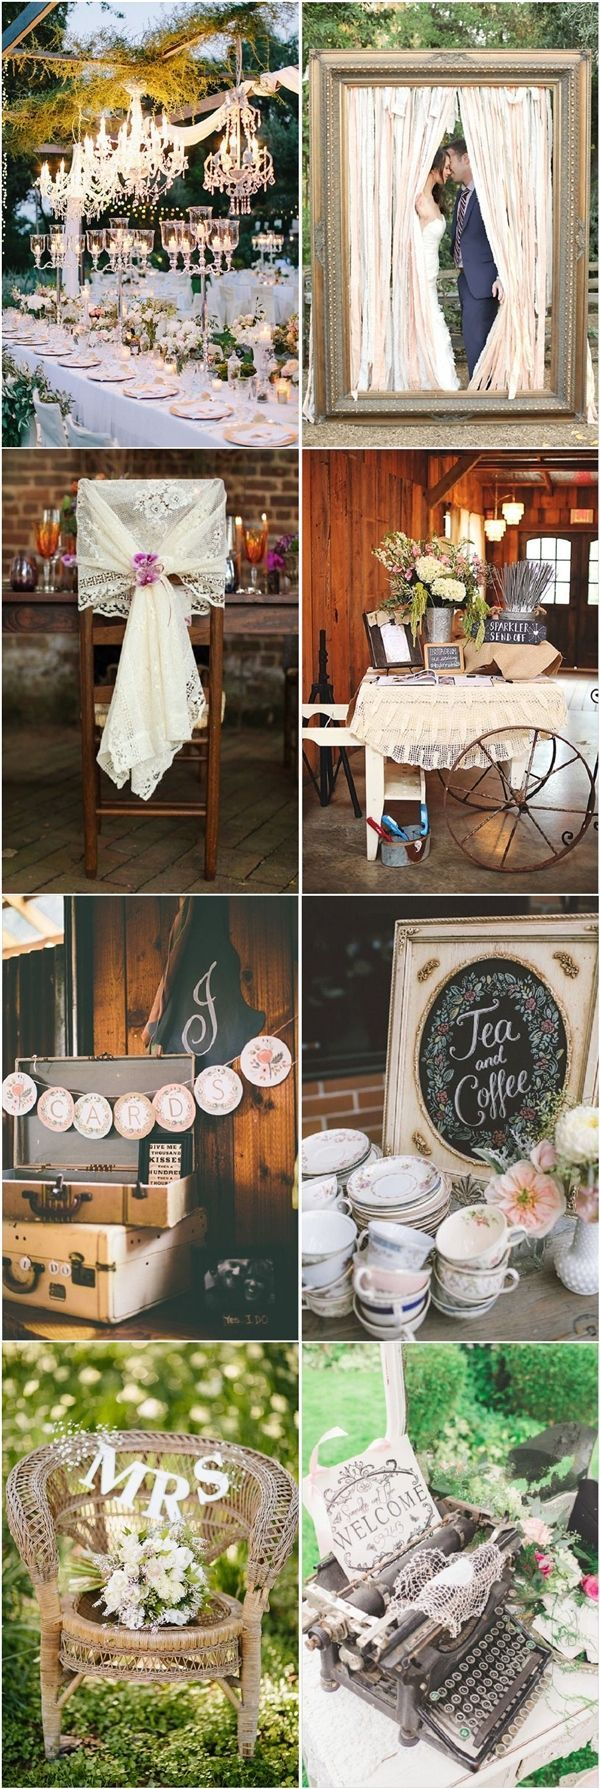 chic vintage wedding decor ideas / http://www.deerpearlflowers.com/vintage-wedding-ideas-for-spring-summer-weddings/